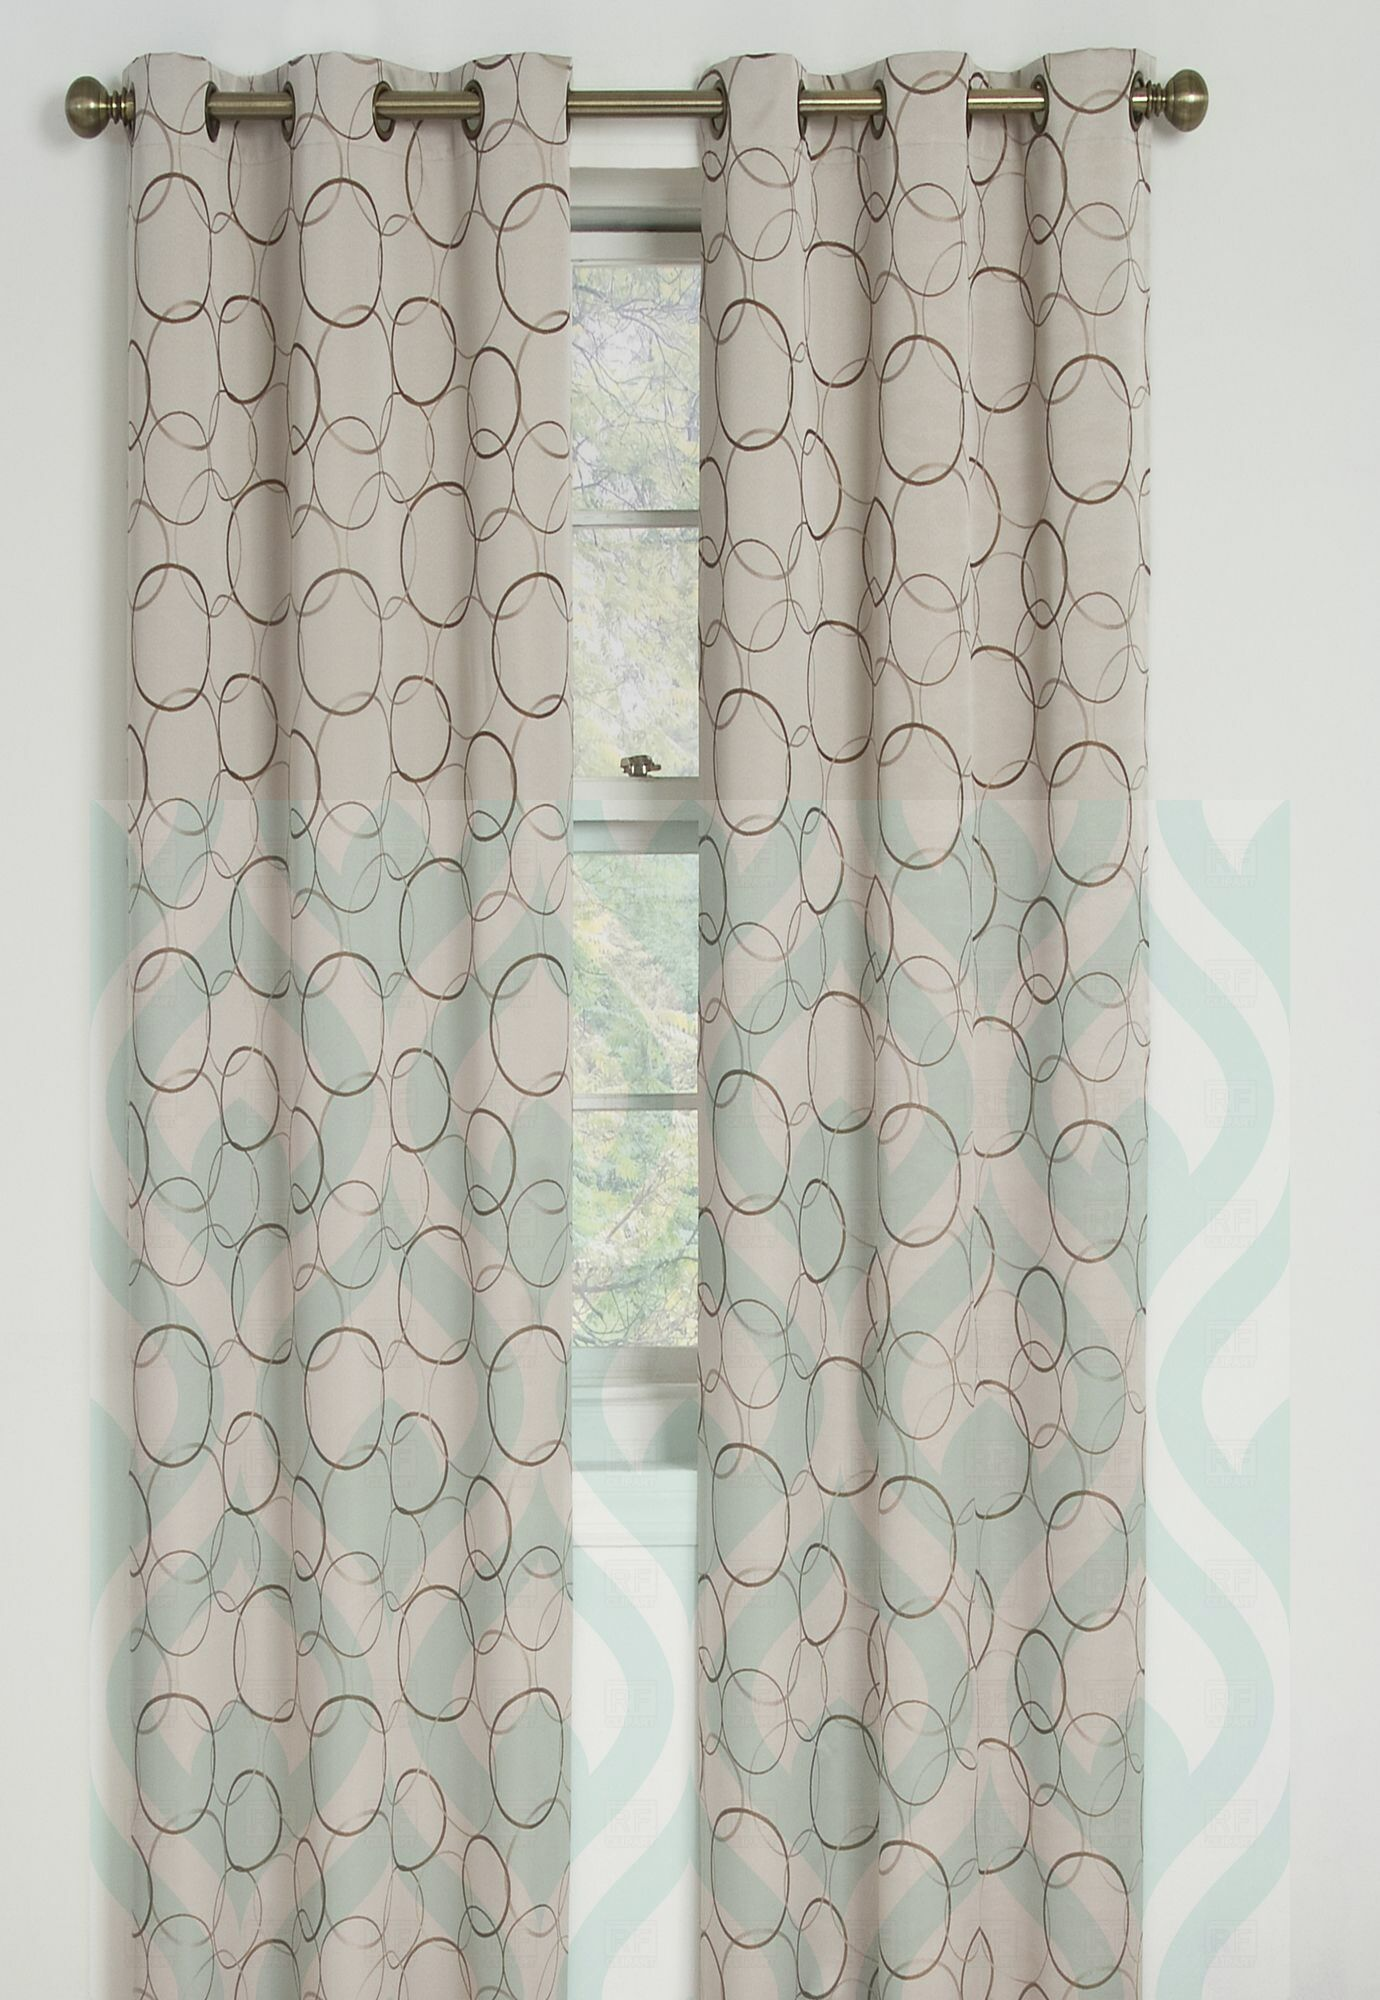 19 Charming Hanging Curtains With Tie Backs Ideas Panel